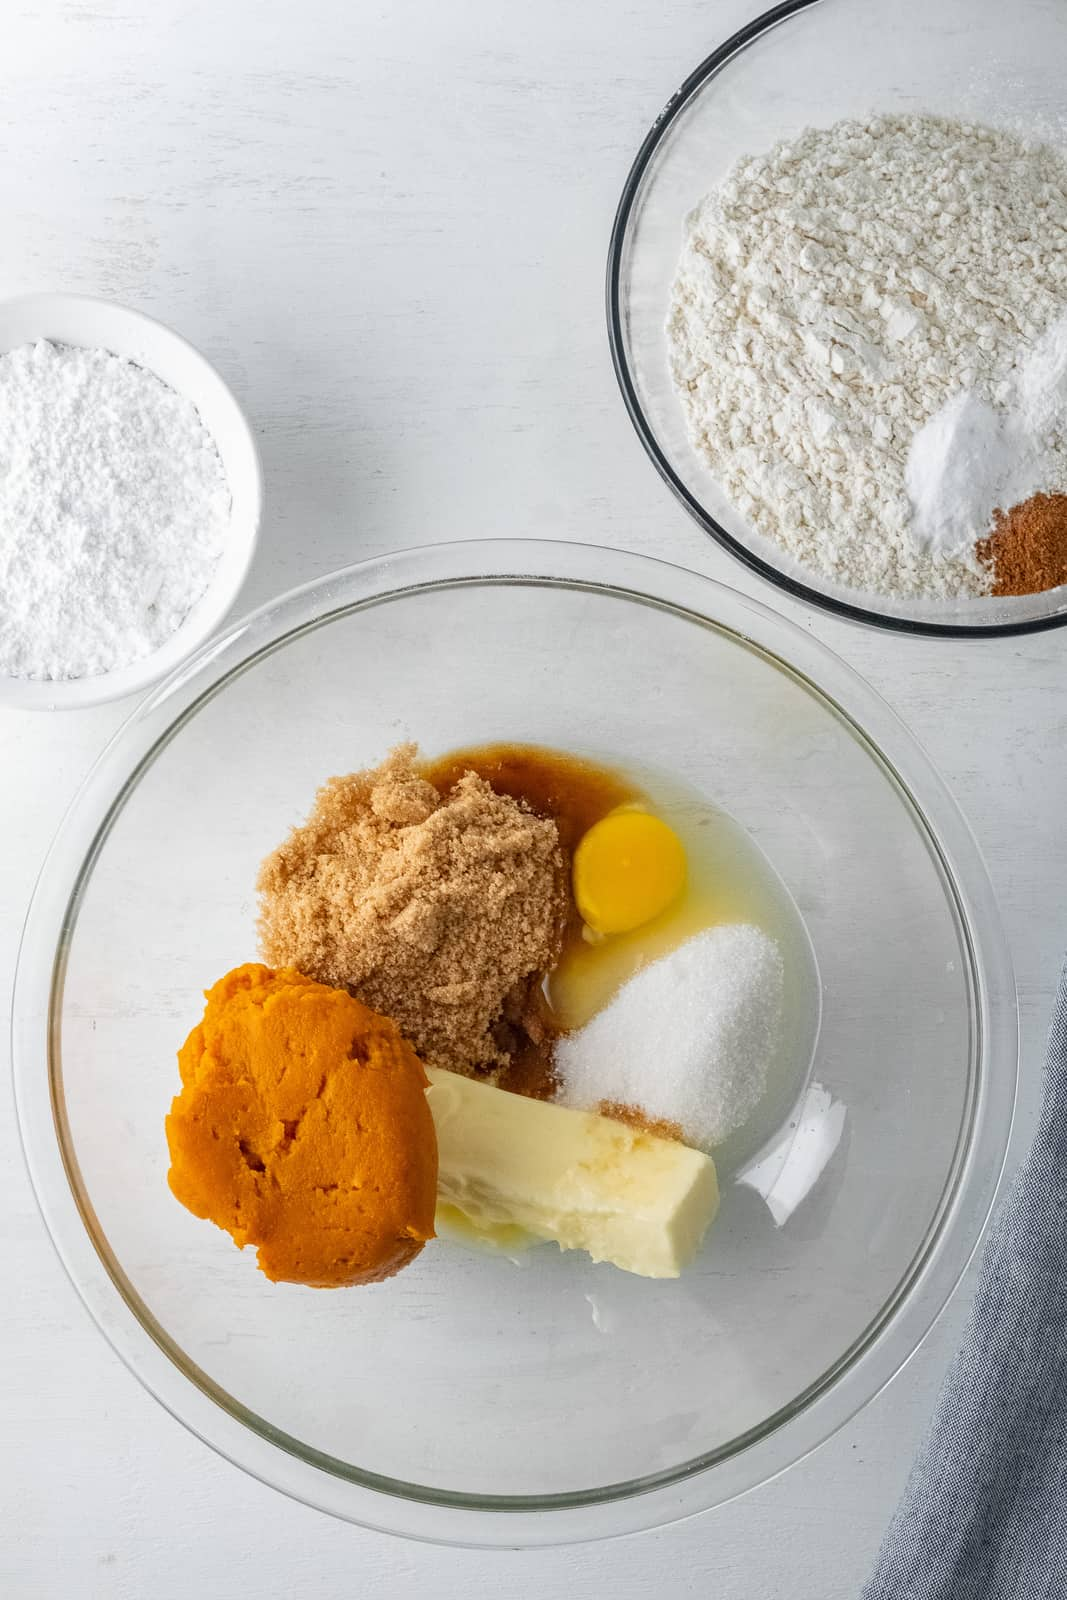 Brown sugar, granulated sugar, egg, pumpkin, butter and vanilla added to another clear bowl.